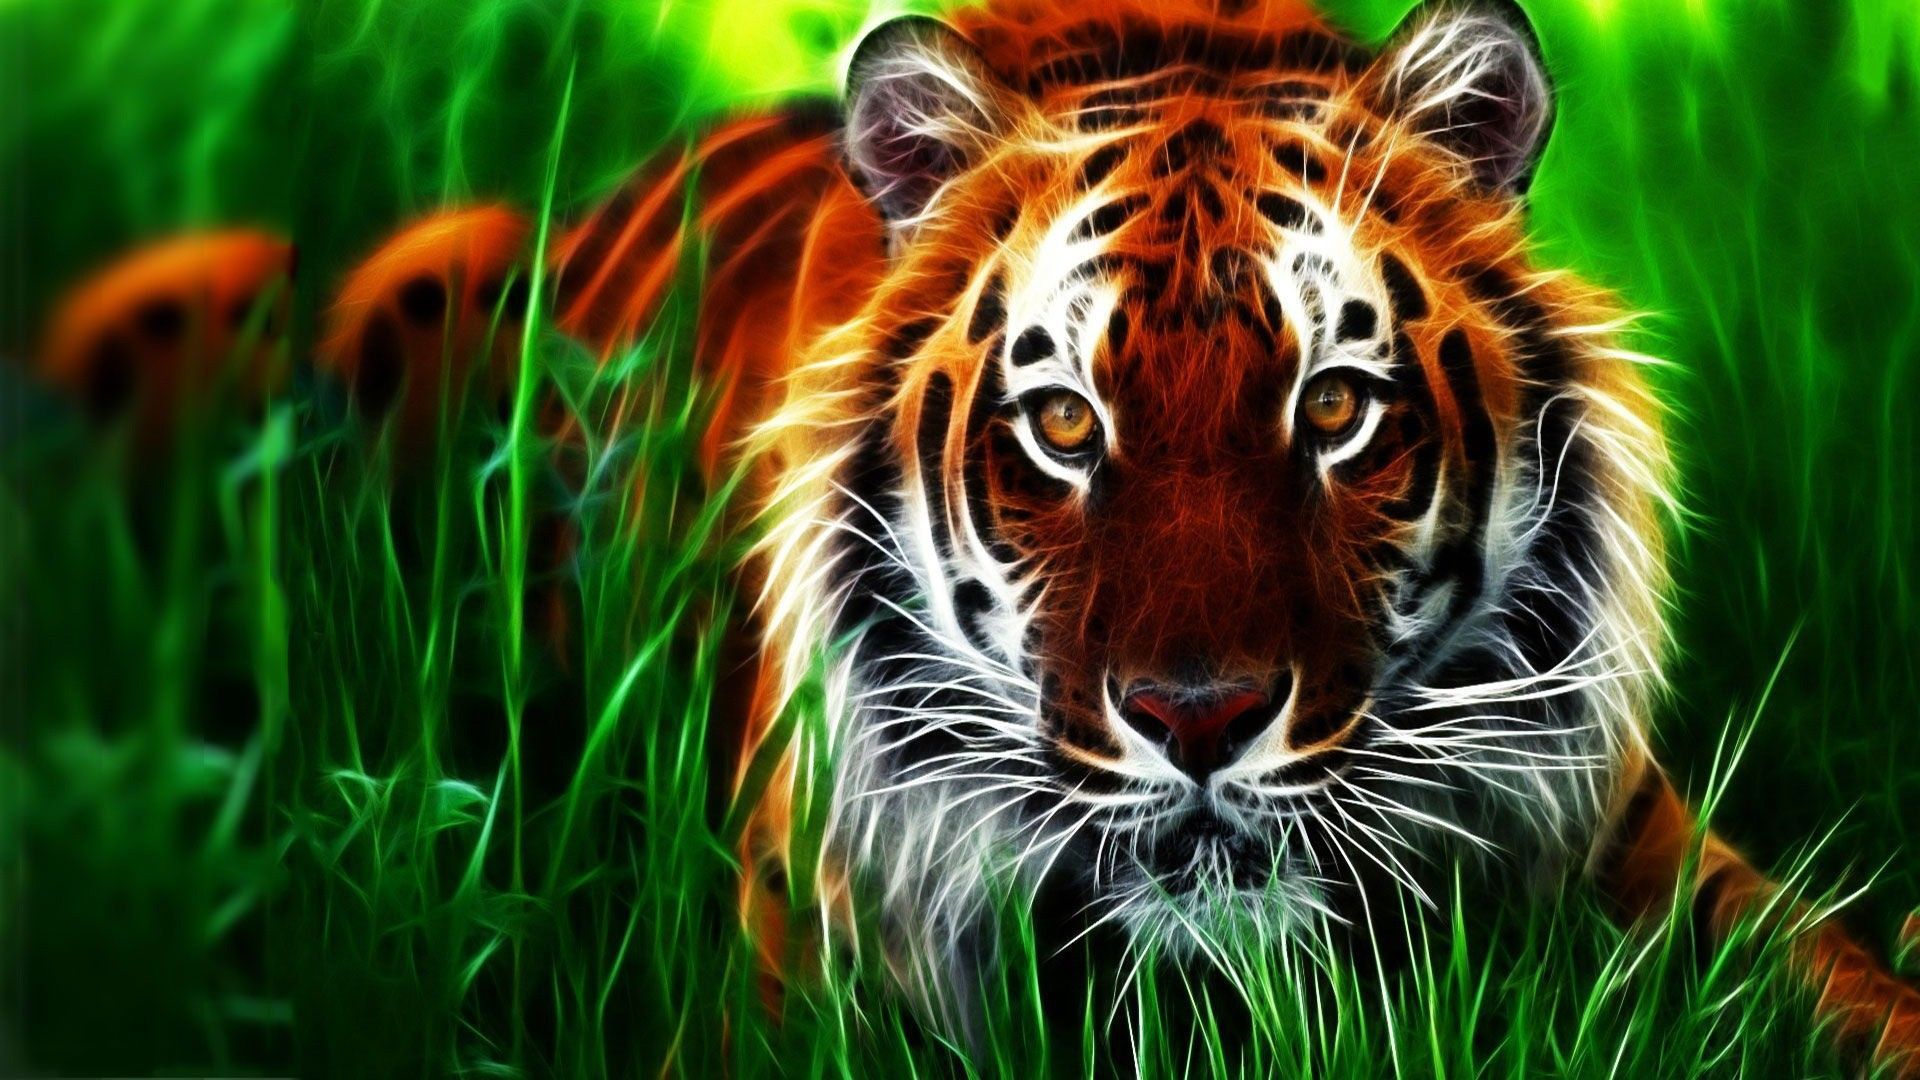 Wallpaper Animal Hd Descargar In 2020 Nature Desktop Wallpaper Animal Wallpaper Tiger Images